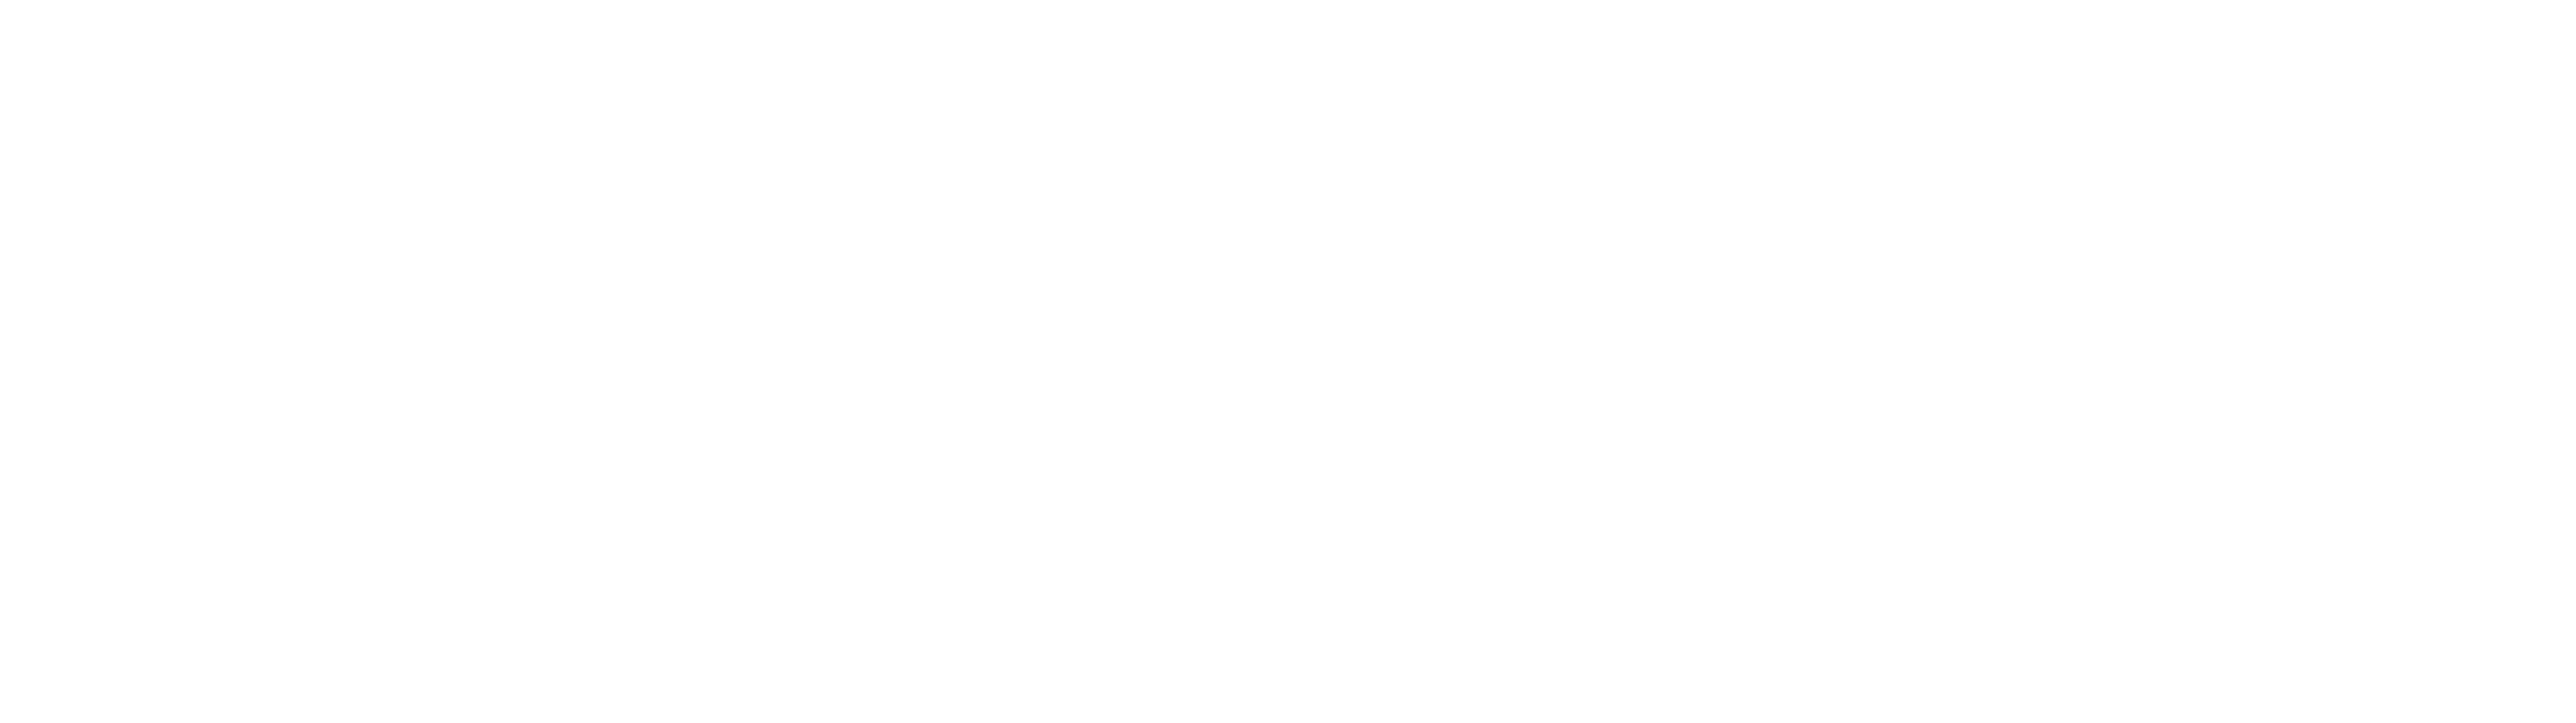 Everything Hotels